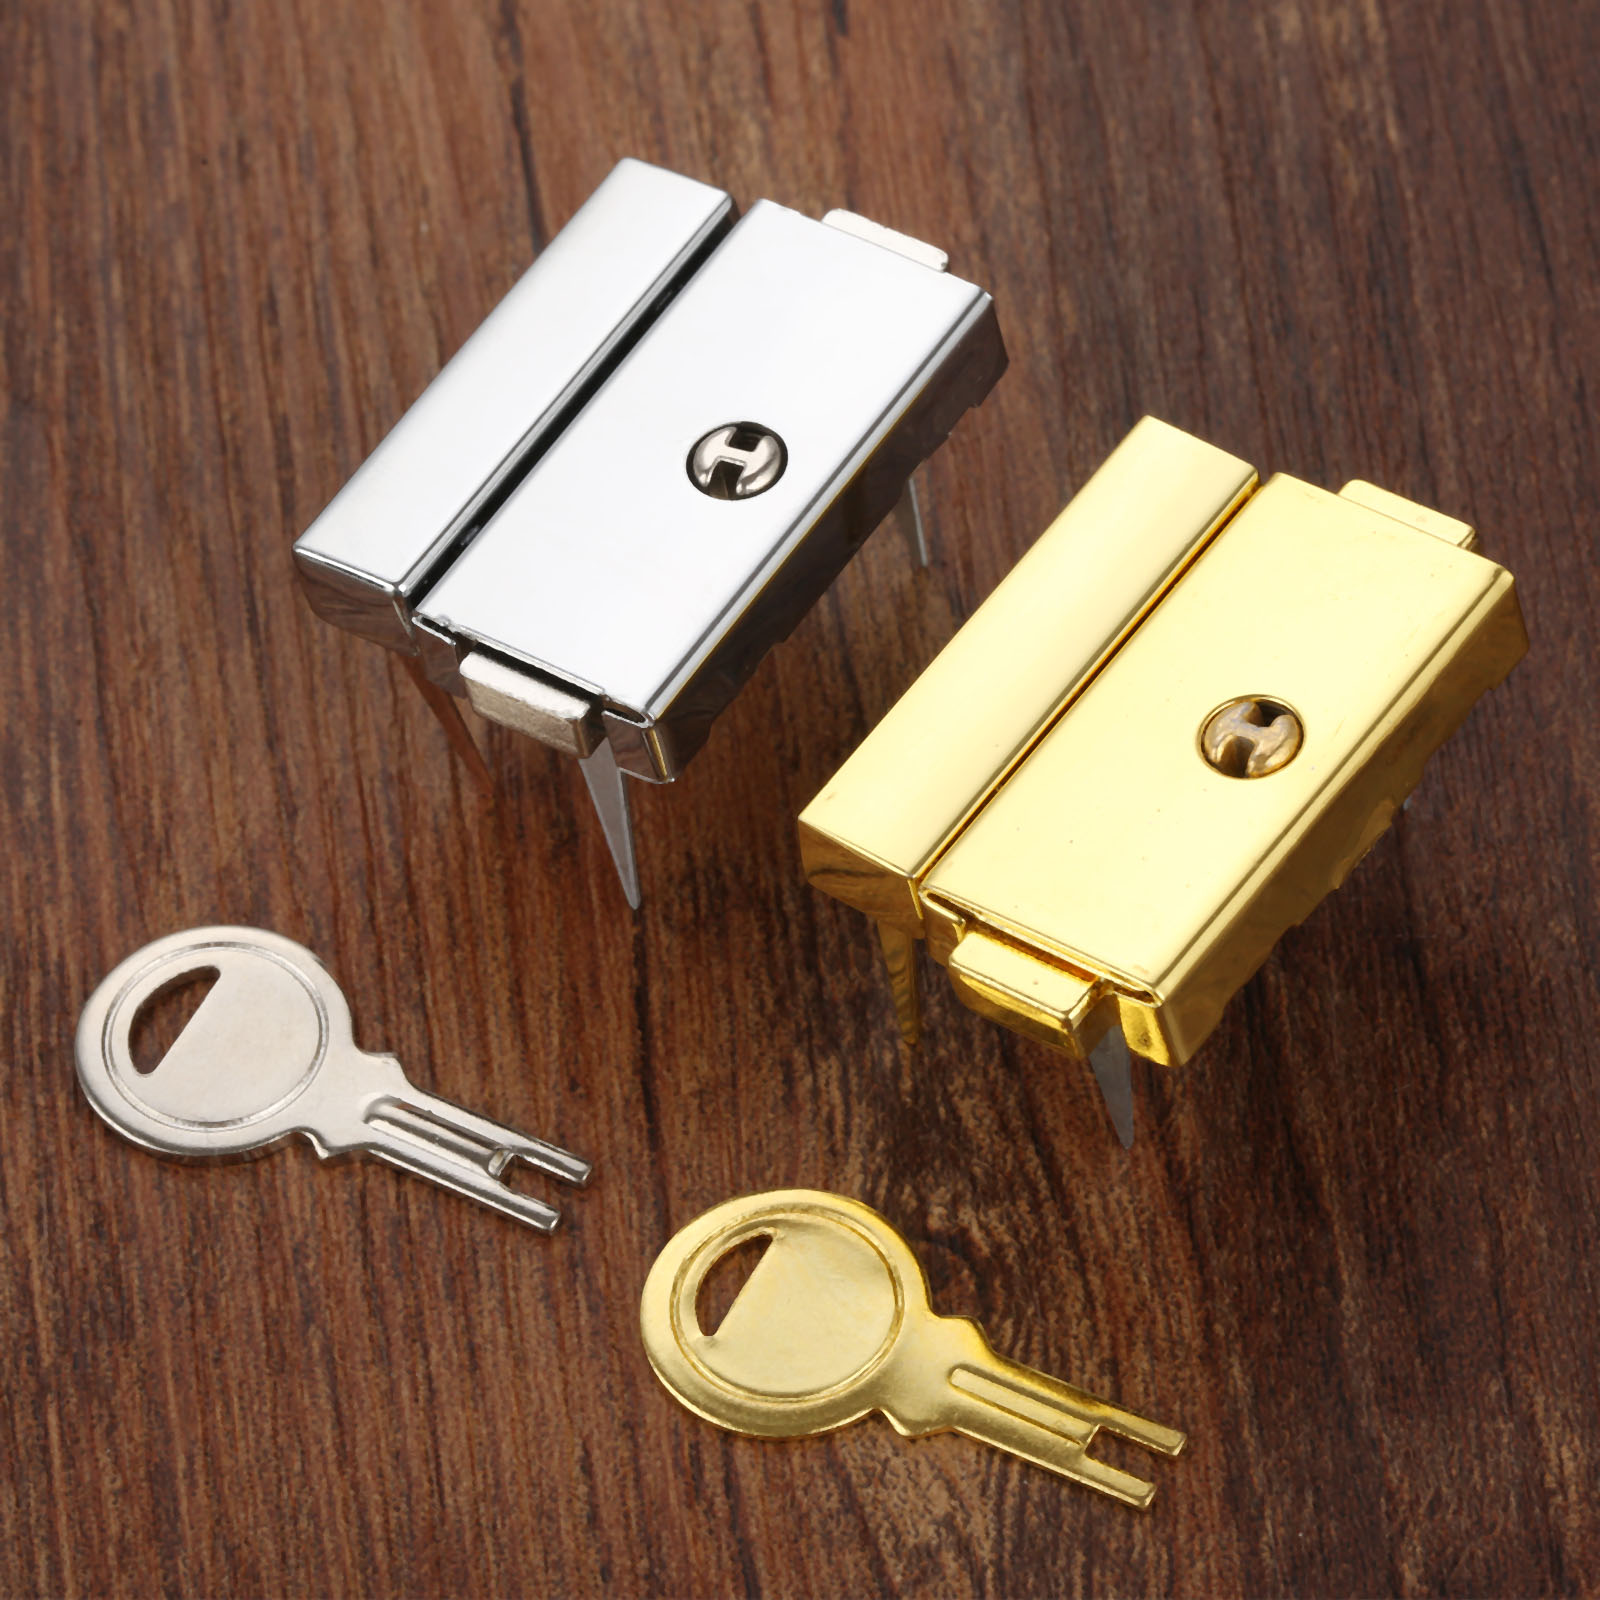 1PC 33*25mm Box Hasps Zinc Alloy Lock Toggle Catch Latches For Jewelry Suitcase Buckle Clip Clasp Vintage Hardware Silver